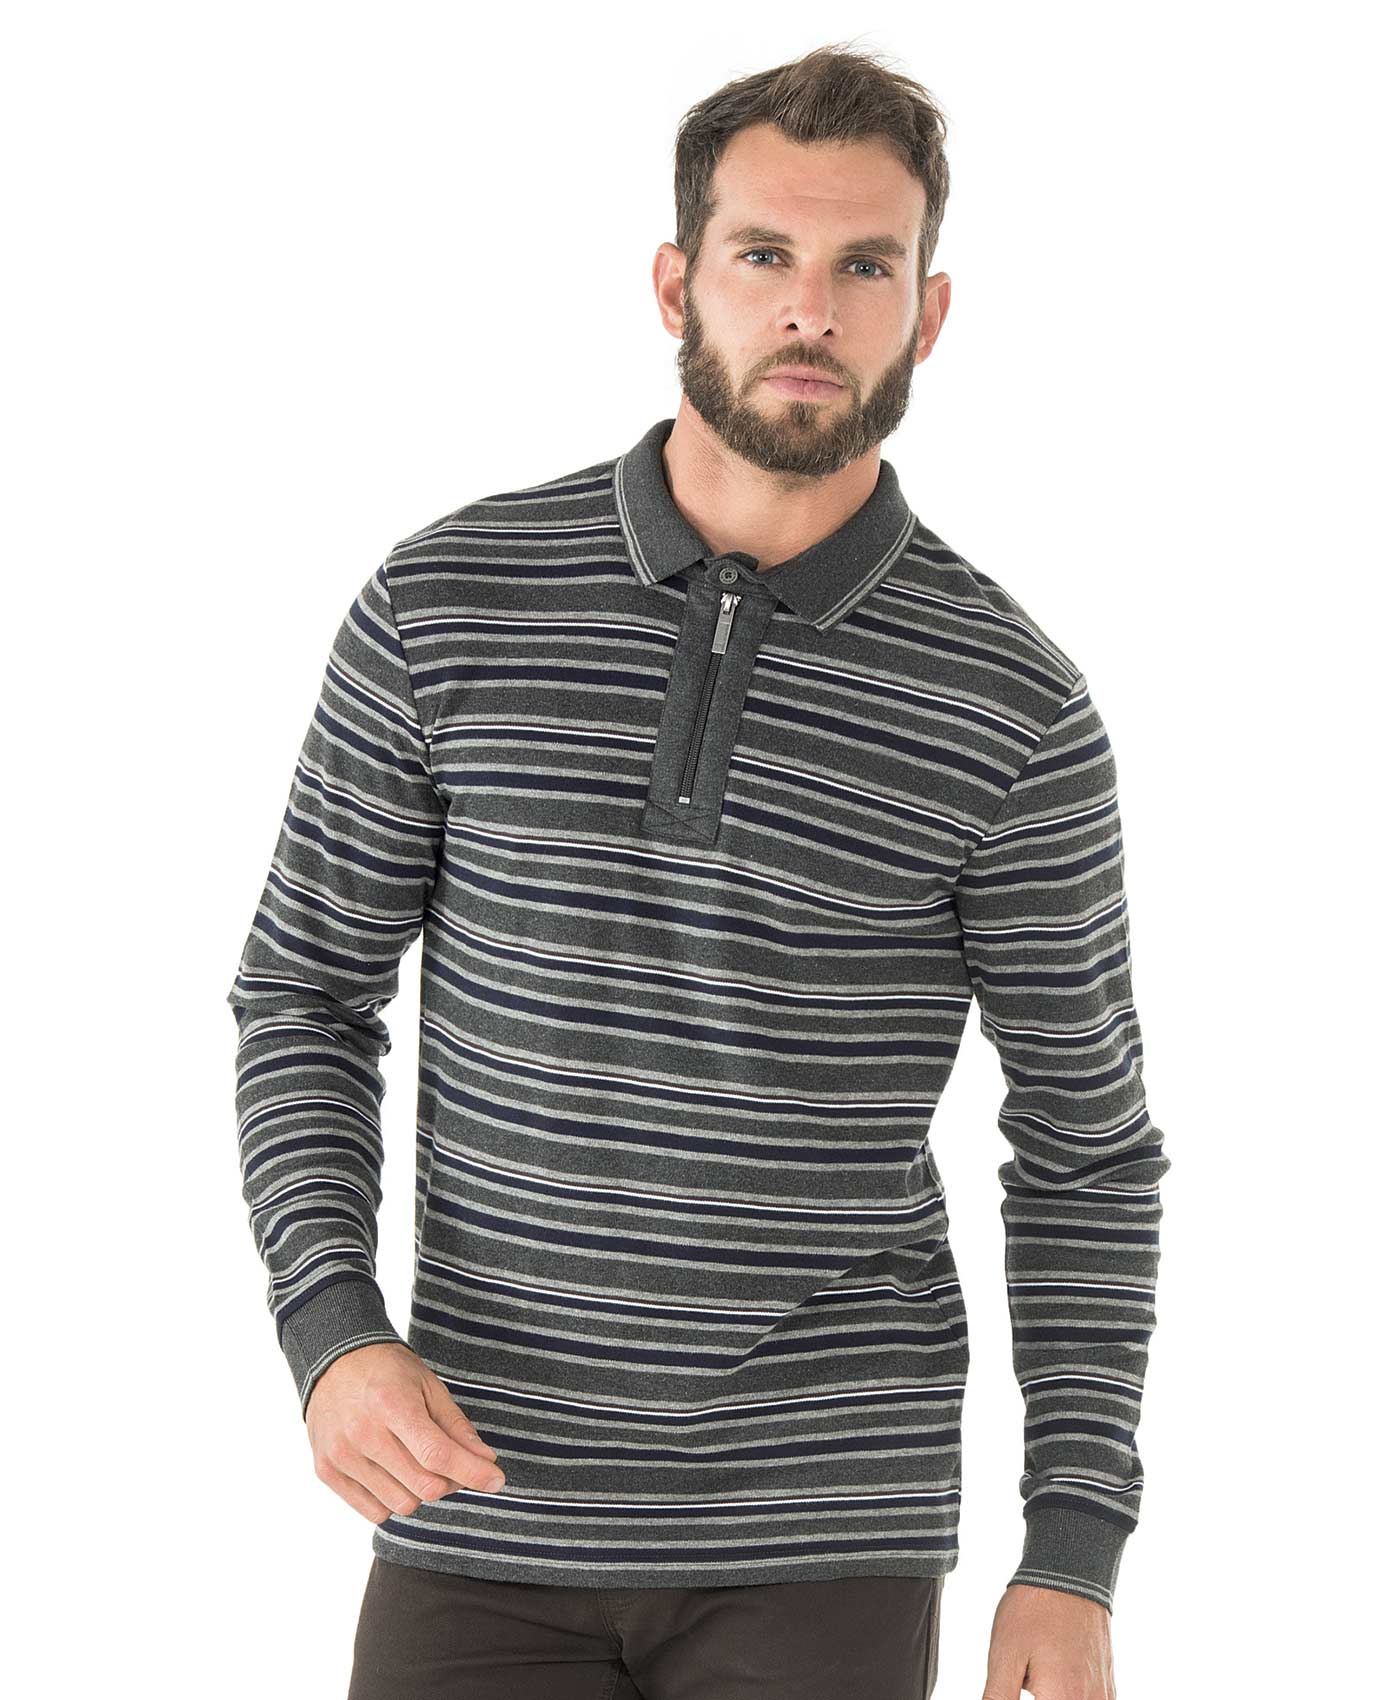 Polo manches longues homme rayé gris - Mode marine Homme